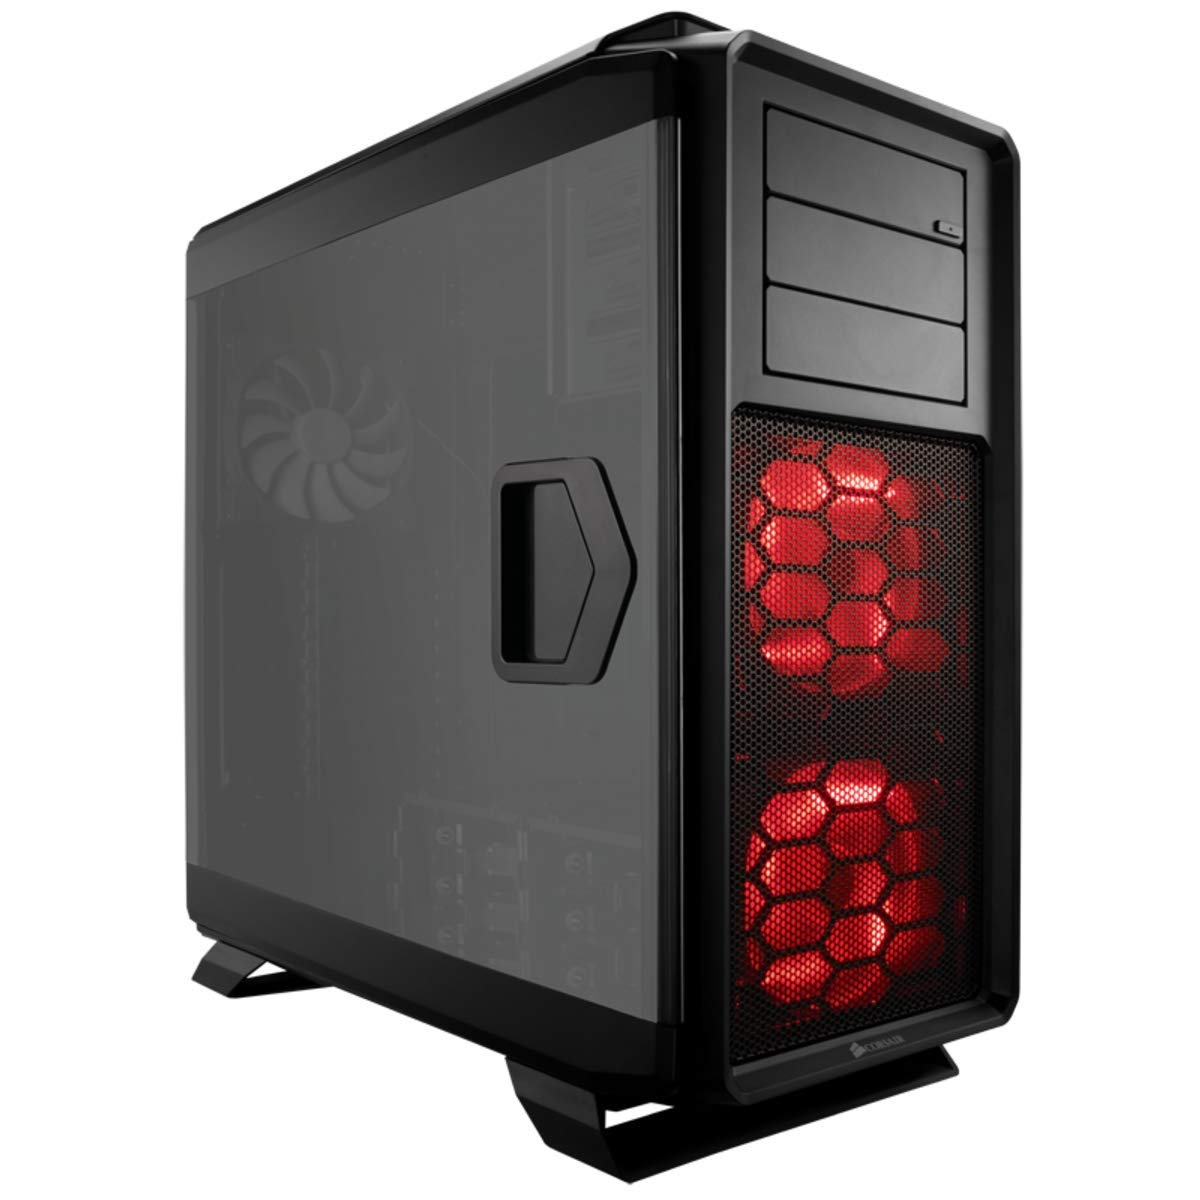 Adamant Custom Video Editing Rendering Media Workstation Desktop PC AMD Threadripper 2950X 3.5Ghz Liquid Cooling 128Gb DDR4 10TB HDD 2TB NVMe SSD 1000W PSU Wi-Fi 2-Way SLI Nvidia RTX 2080 Ti